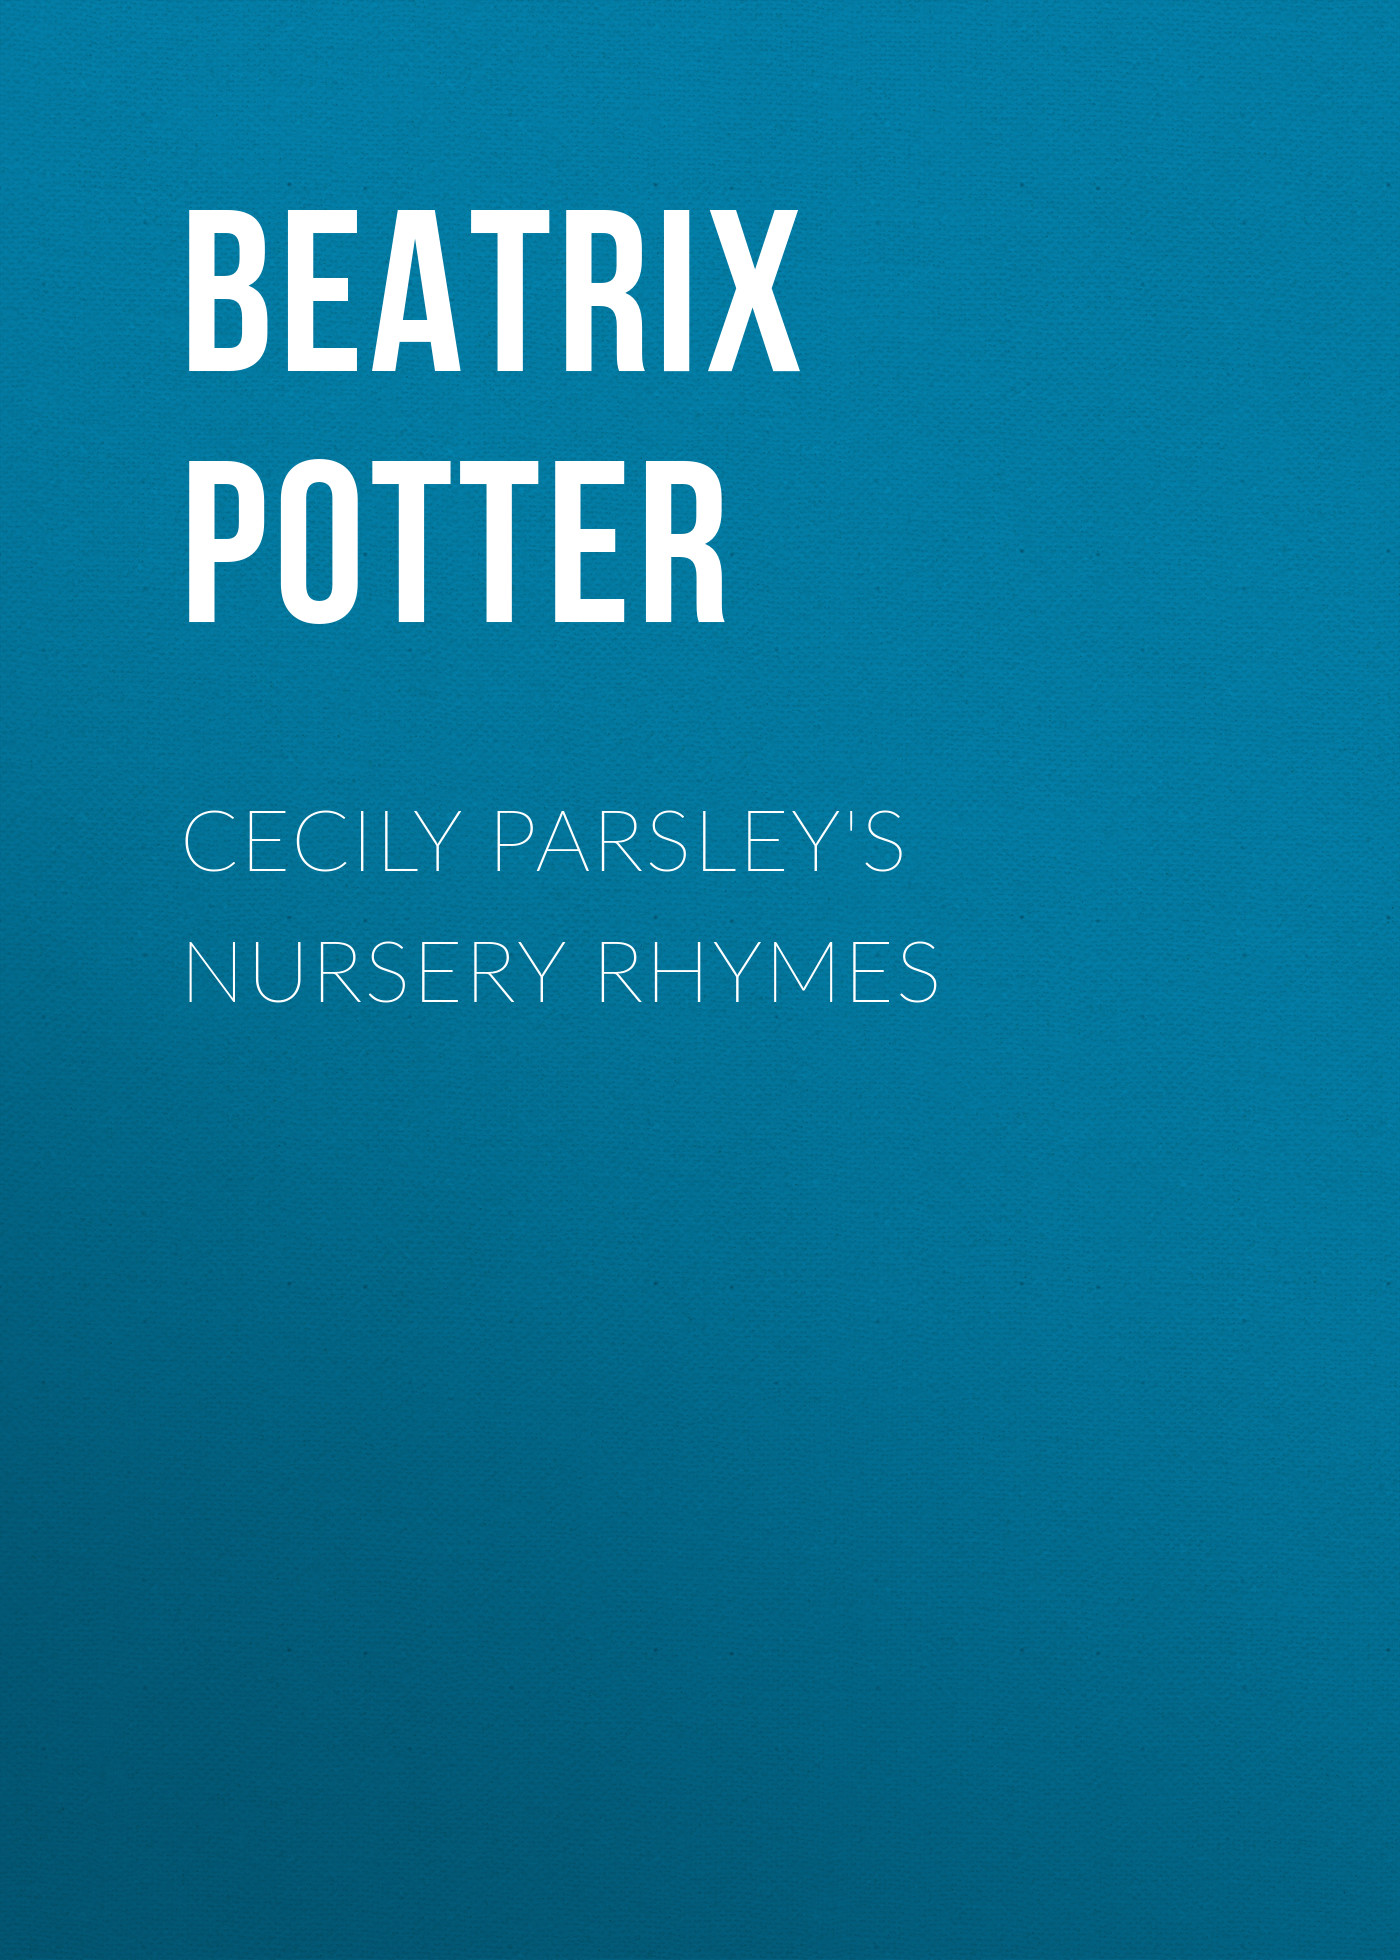 Беатрис Поттер Cecily Parsley's Nursery Rhymes jenny dooley virginia evans happy rhymes 1 nursery rhymes and songs pupil s book